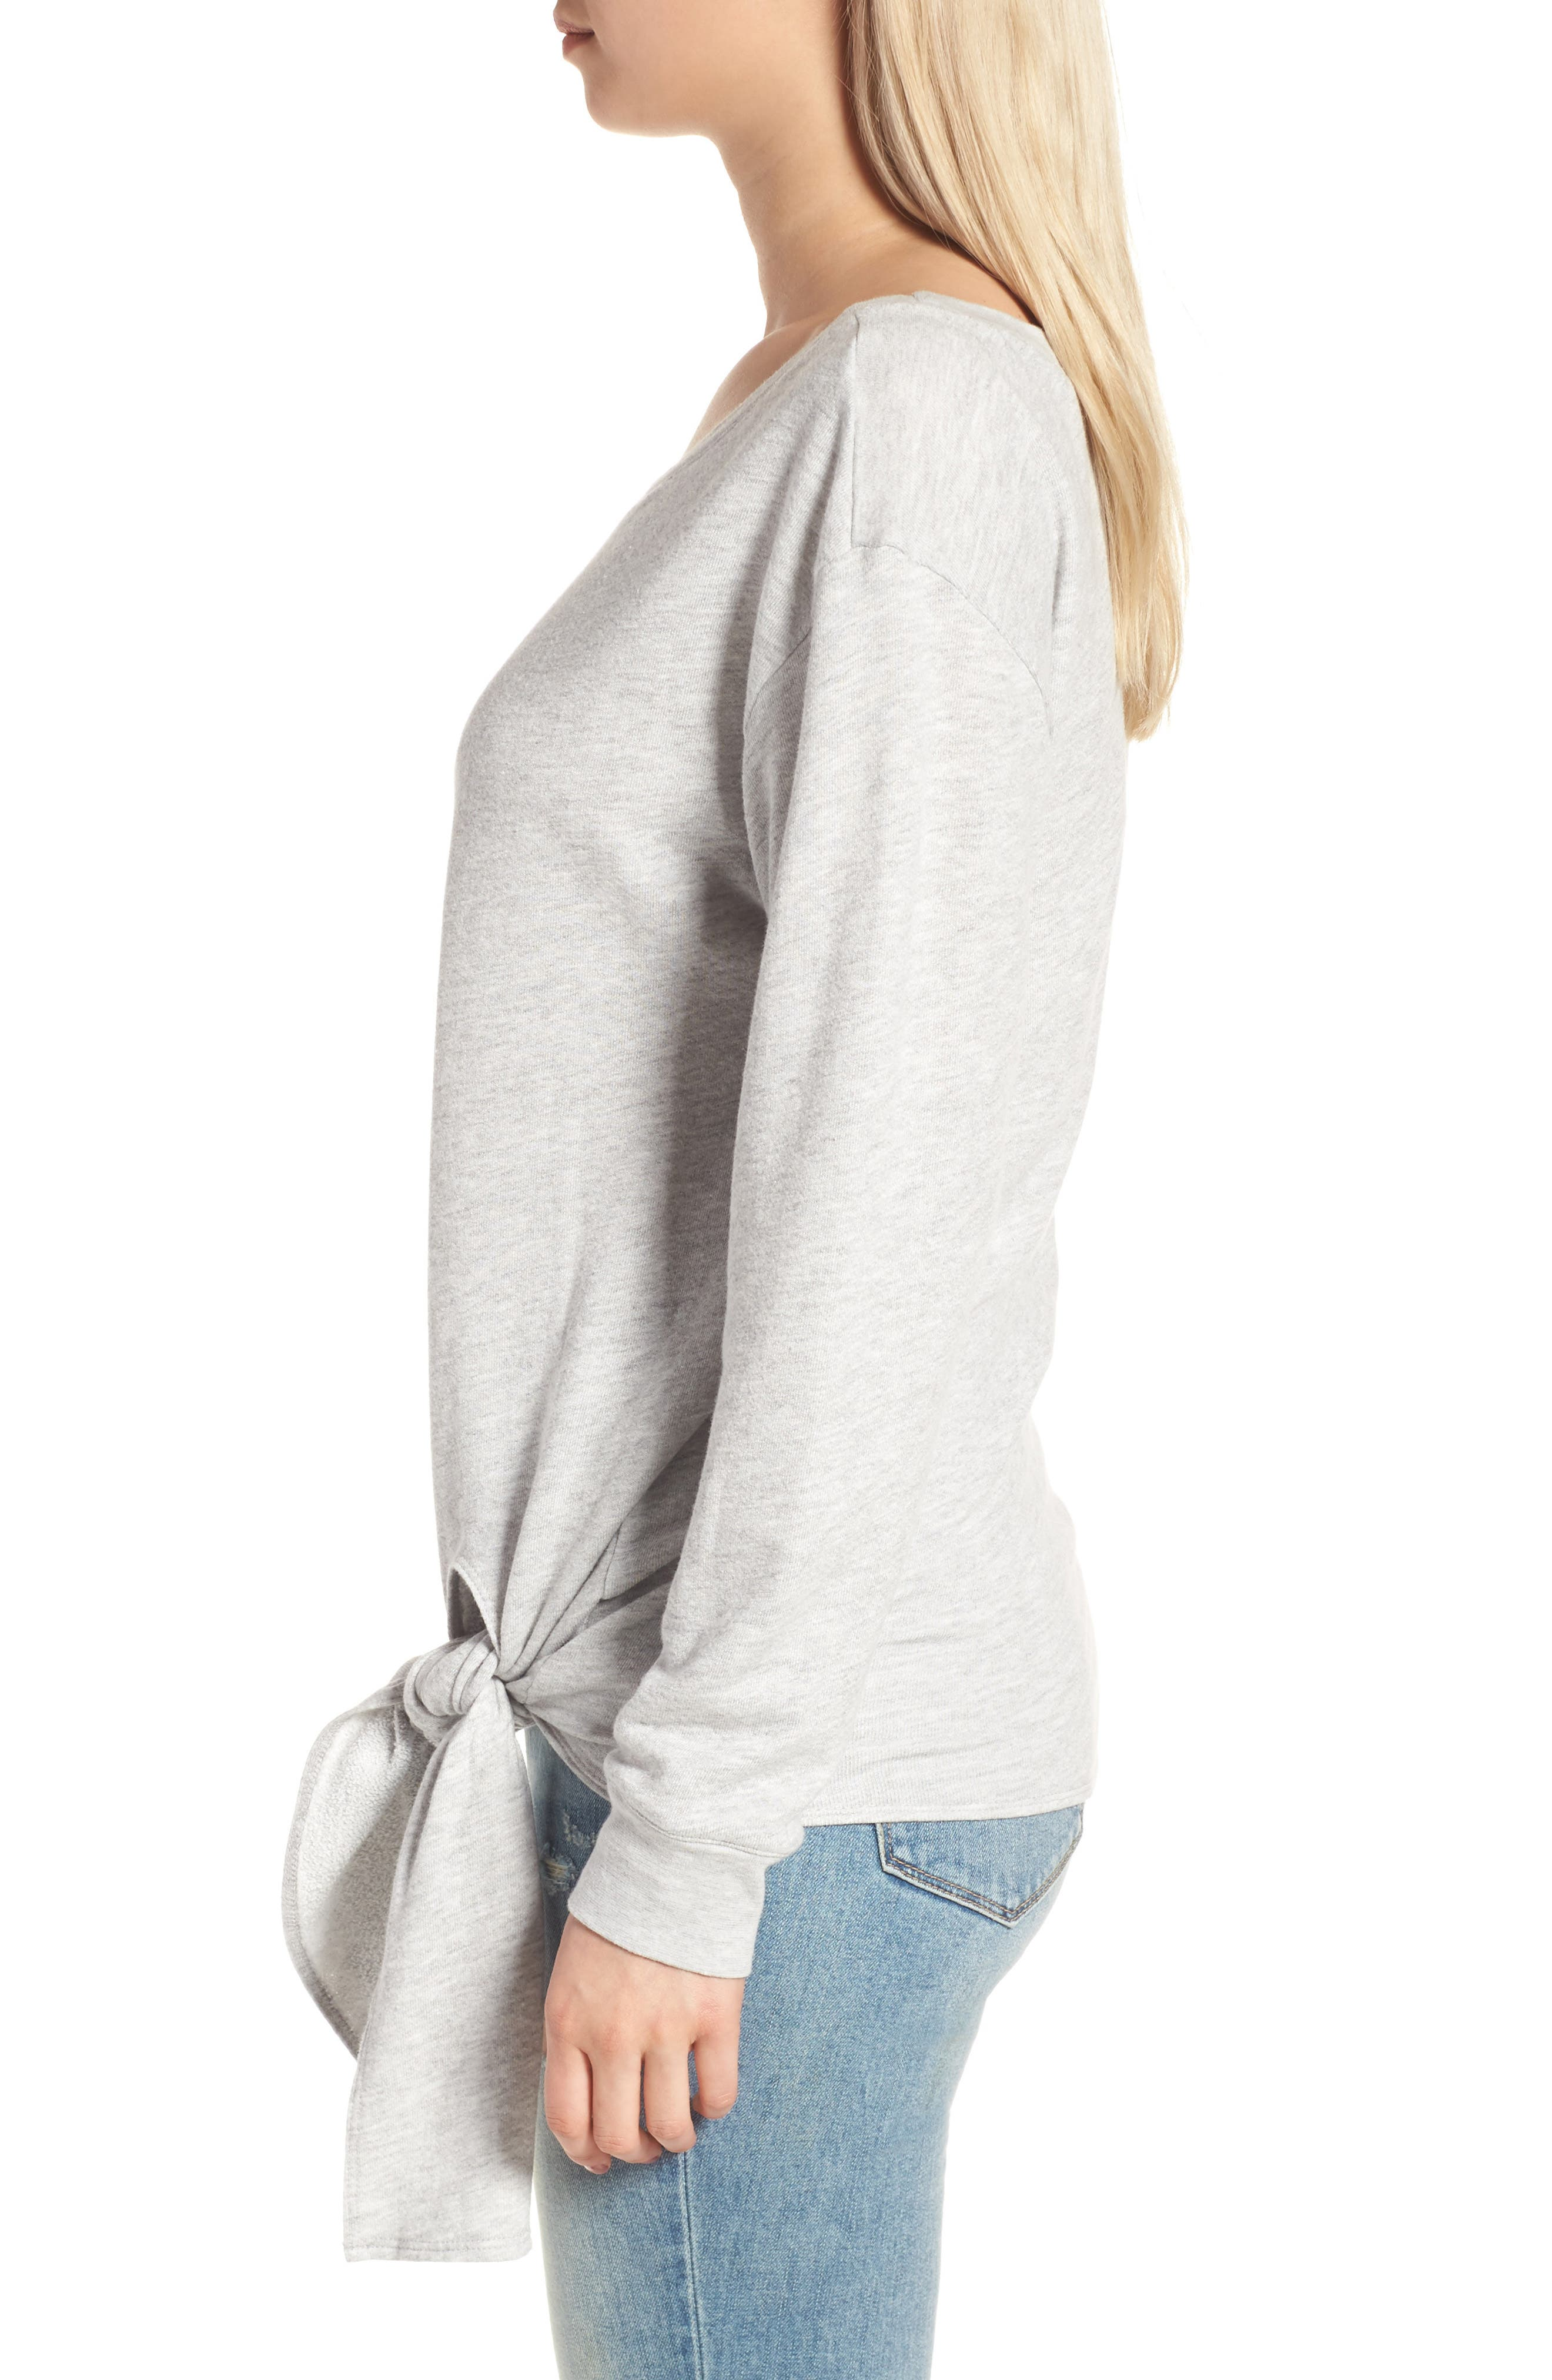 HINGE,                             Tie Front Pullover,                             Alternate thumbnail 3, color,                             020